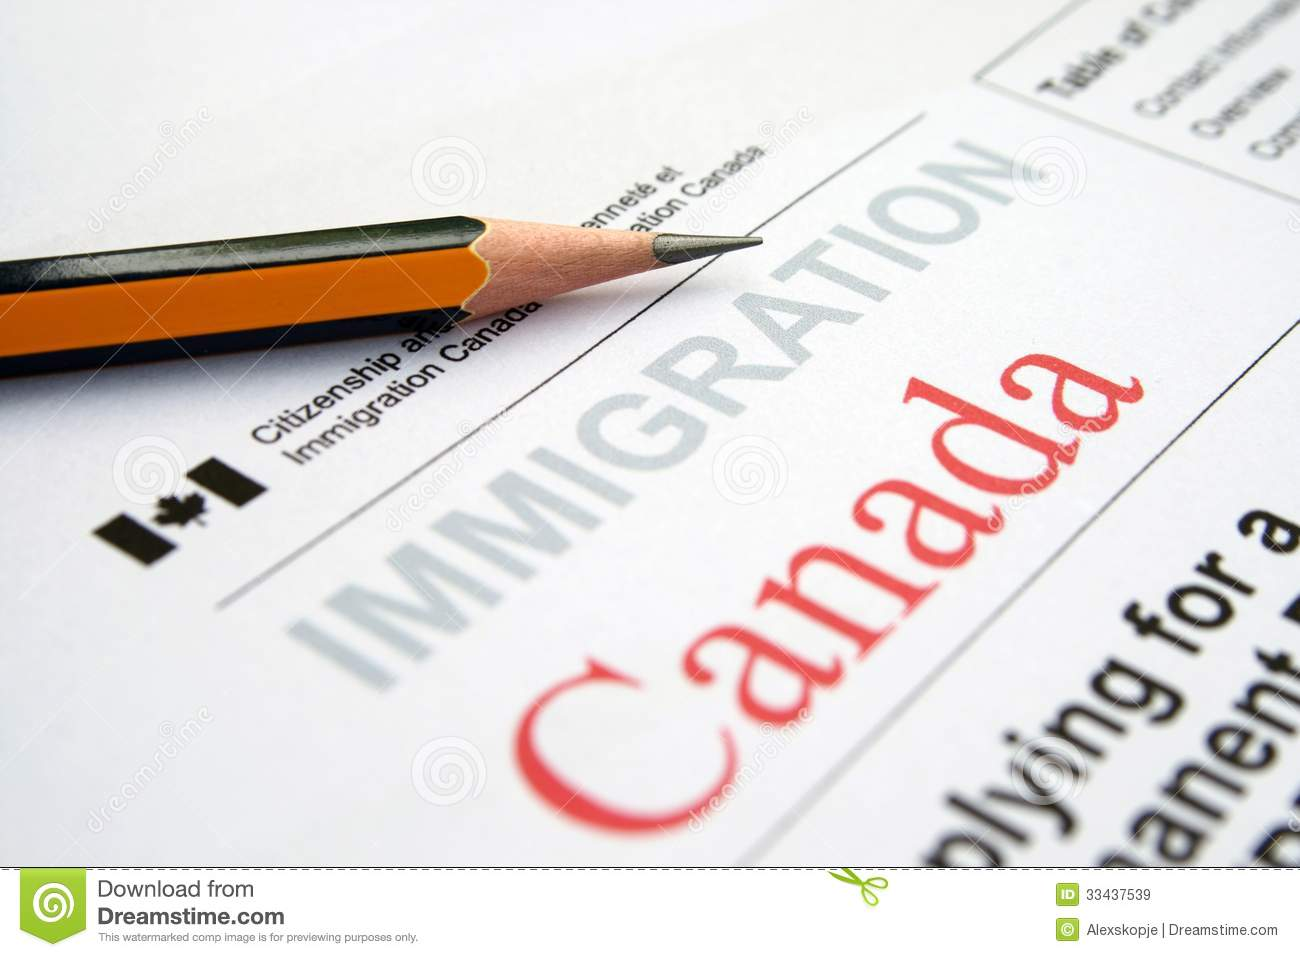 Apply for Canada PR Visa - Permanent Residency Visa Application